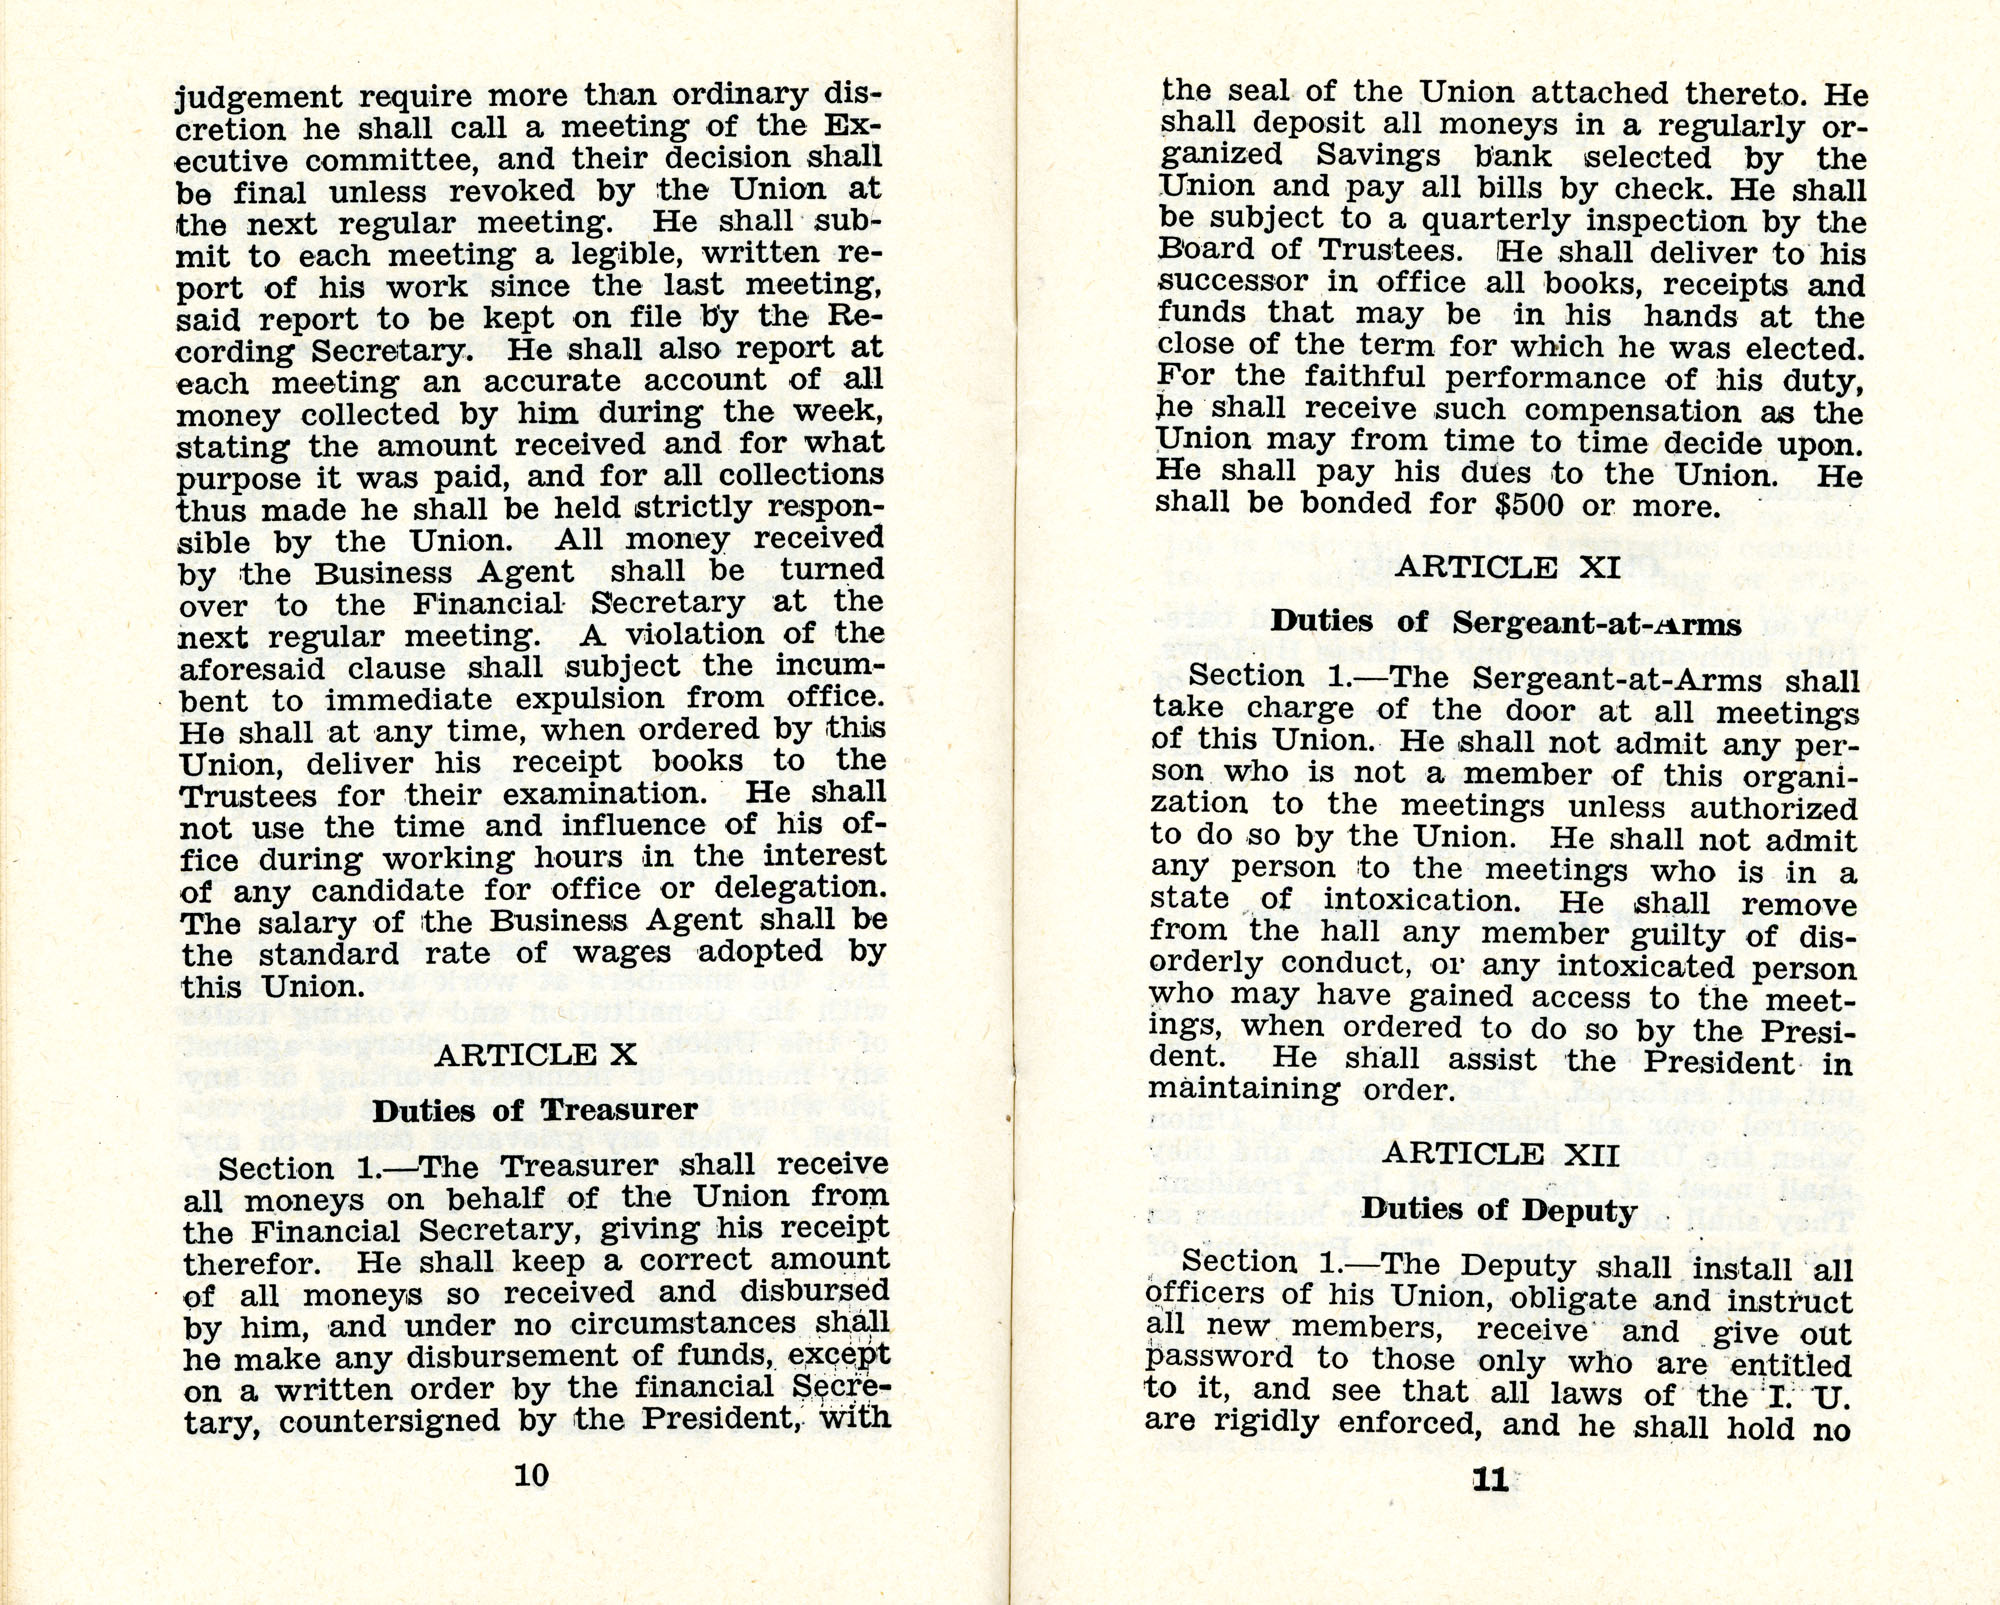 Constitution and by-laws of unions no.1 and 10, Page 6